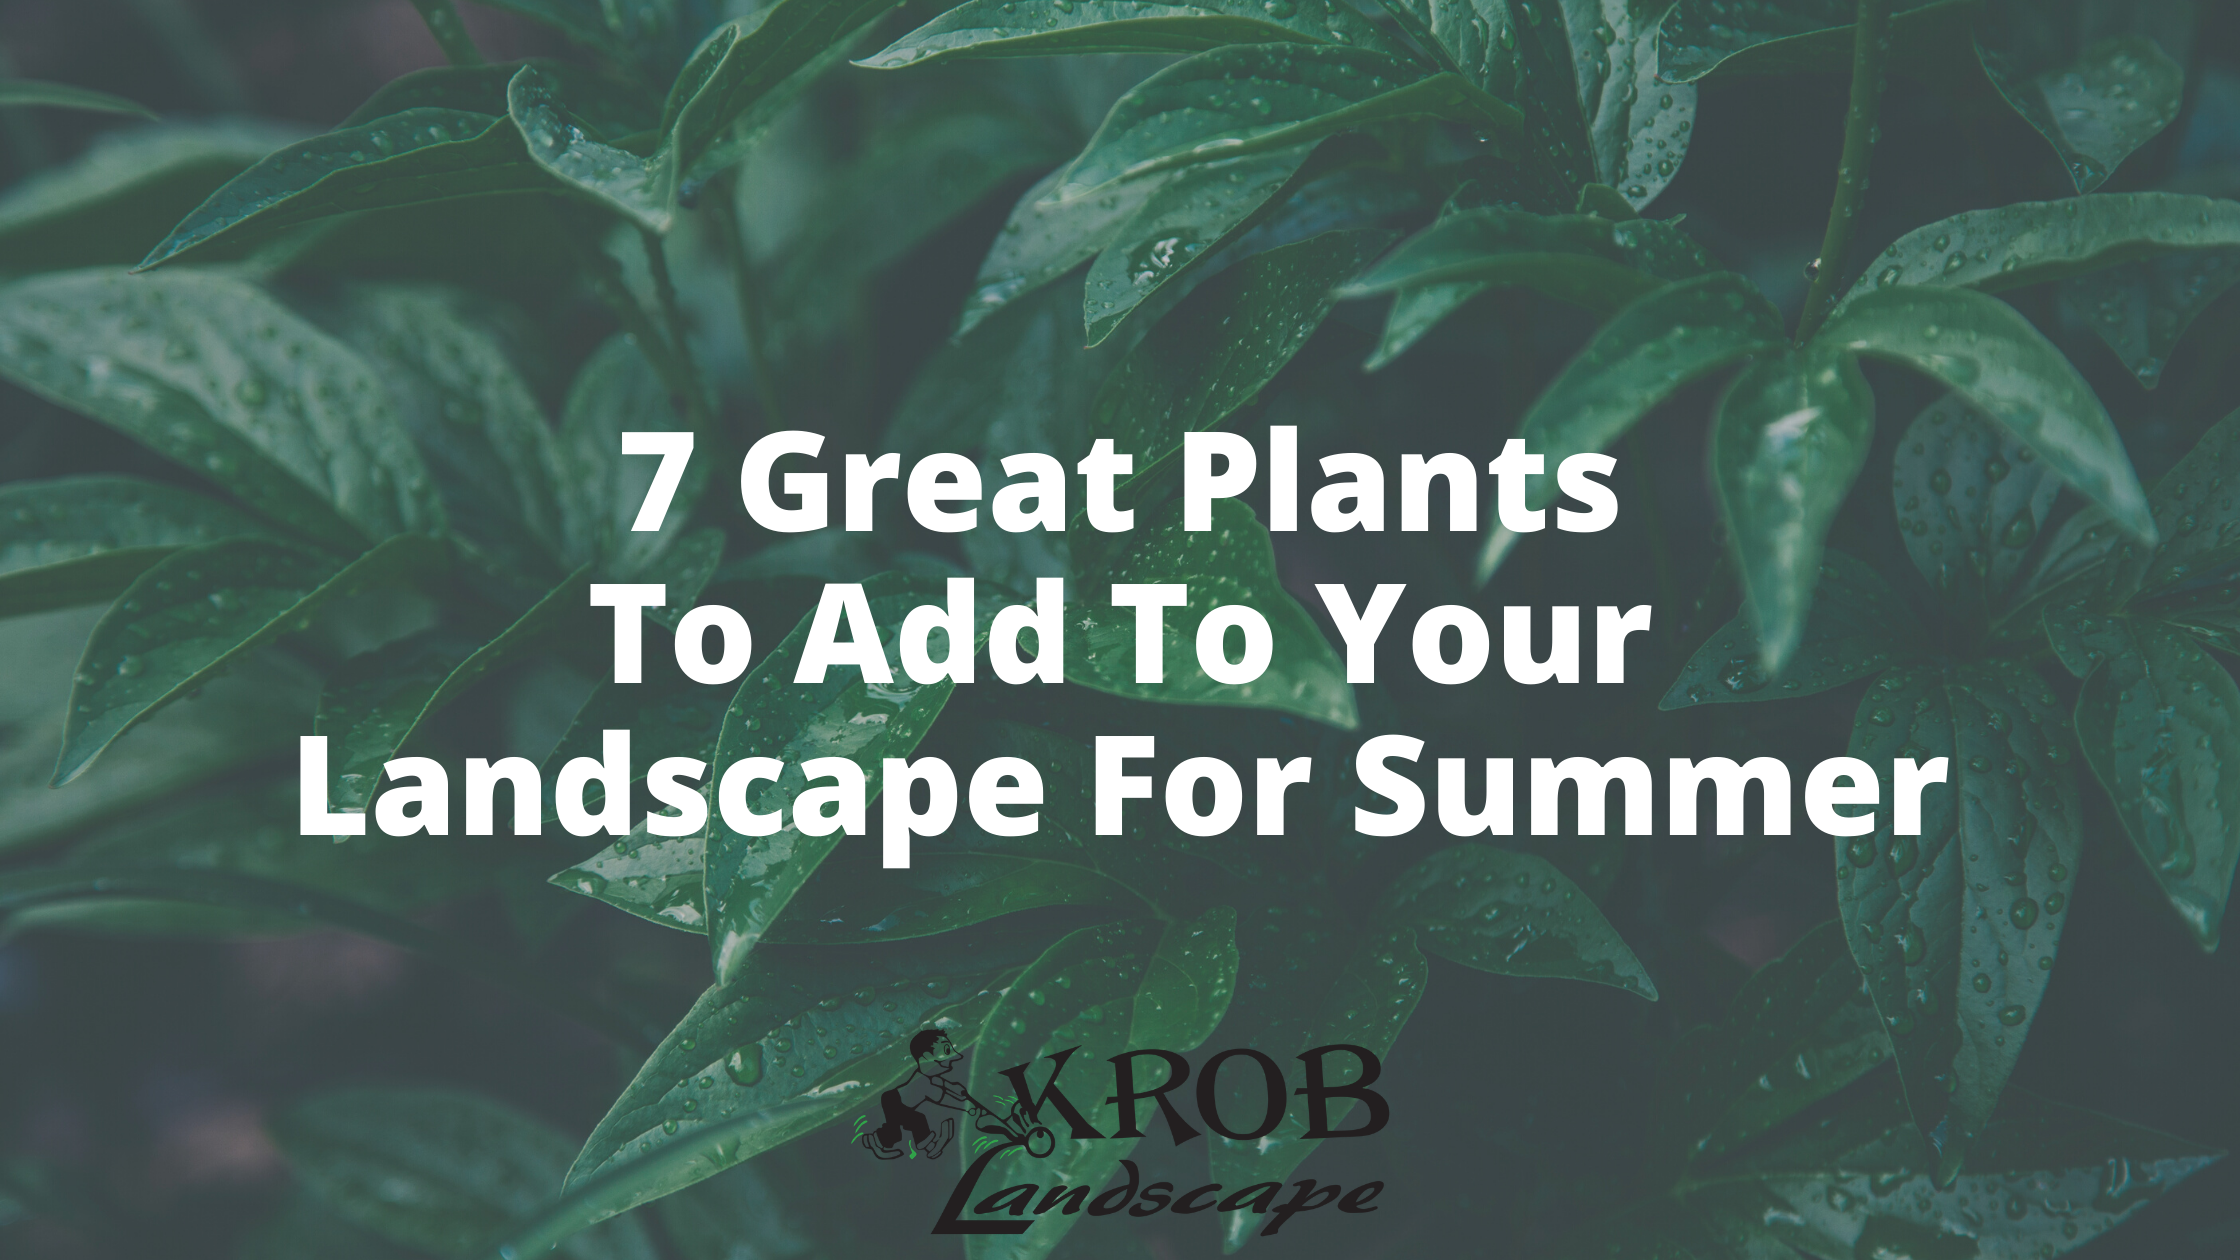 7 Great Plants To Add To Your Landscape For Summer.png